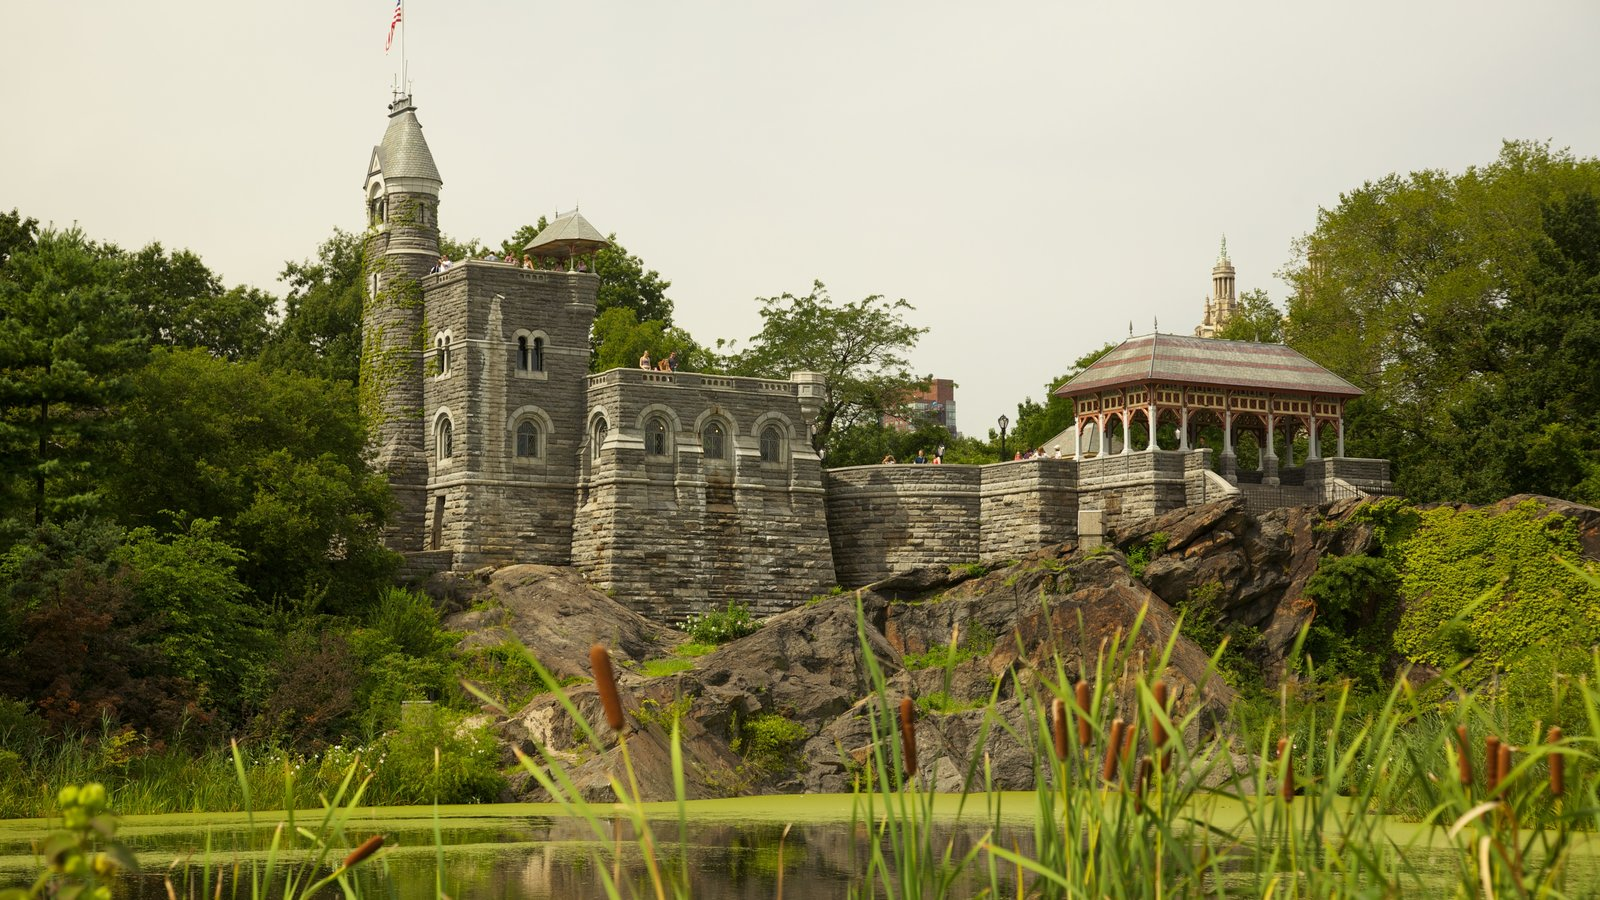 Gardens & Parks Pictures: View Images of Belvedere Castle